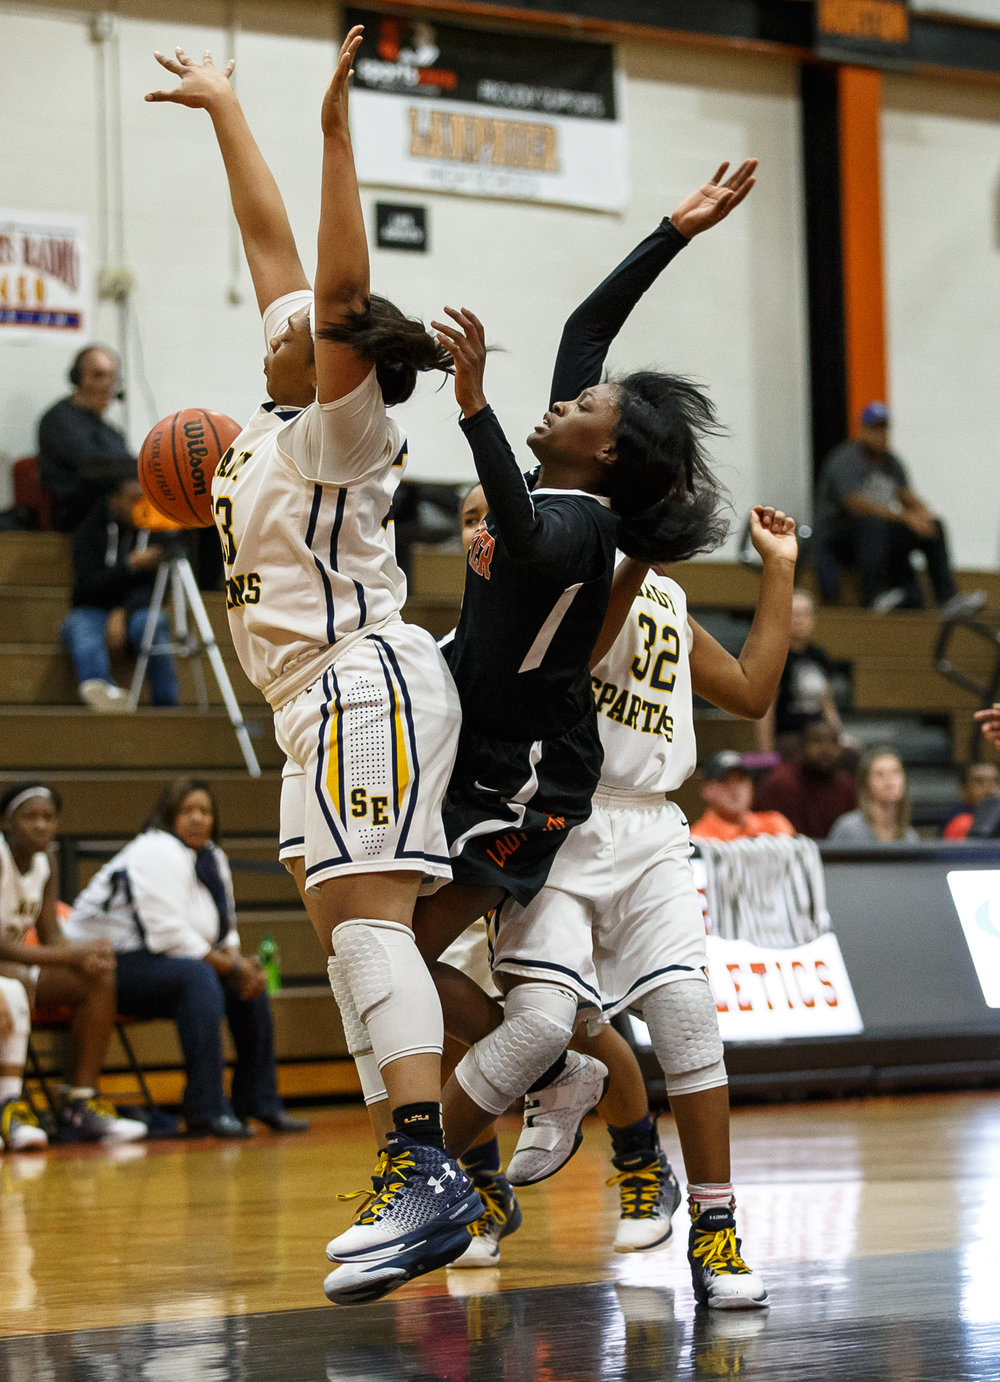 Lanphier's Jeniya Griffin (5) draws the foul as she drives into the basket against Southeast's Kelsey Alexander (33) and Southeast's Jade King (32) in the second quarter during the third place game of the Girls City Basketball Tournament at Lanphier High School, Thursday, Jan. 26, 2017, in Springfield, Ill. Justin L. Fowler/The State Journal-Register